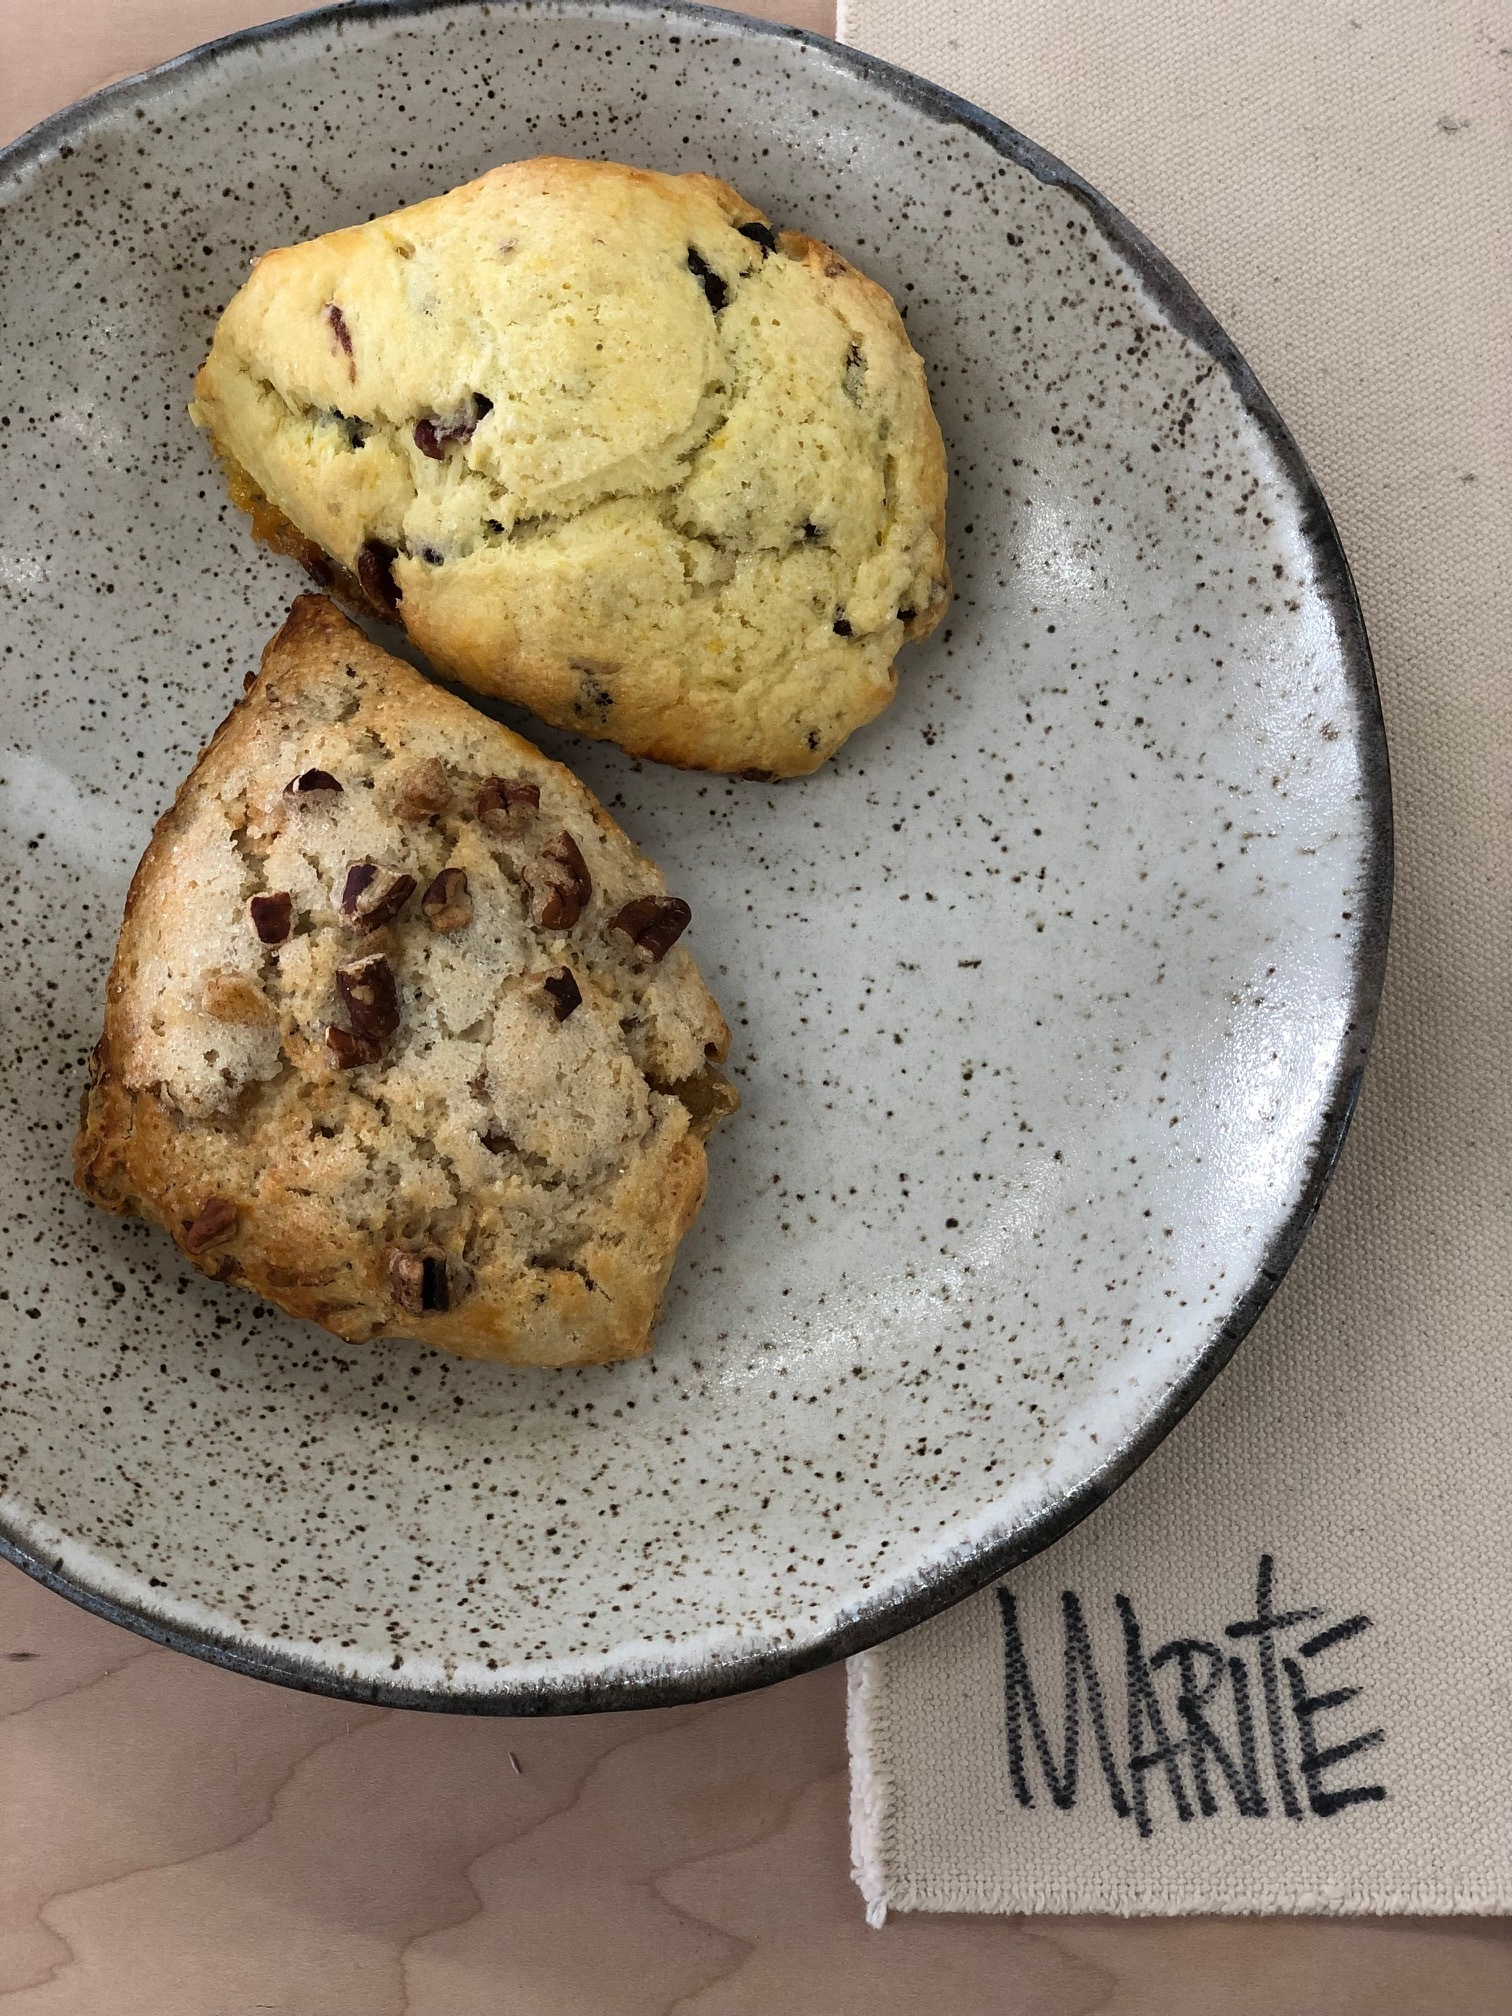 The fresh (and delicious) scones served in her bowl during our Make(Her) Q&A Conversation.